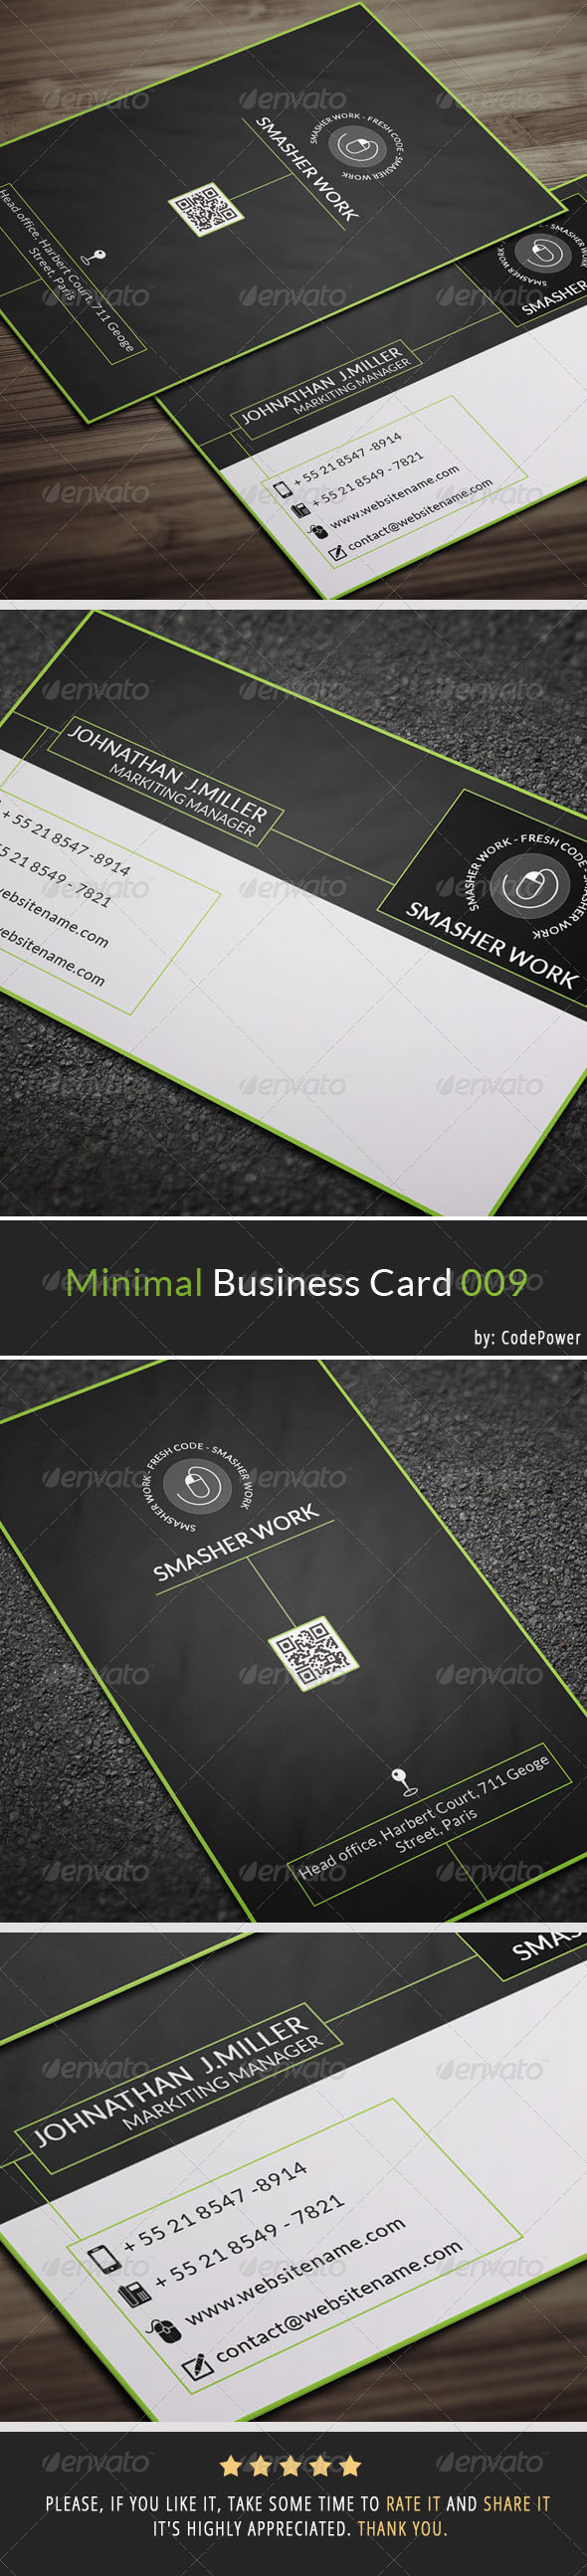 GraphicRiver Minimal Business Card 009 7320626